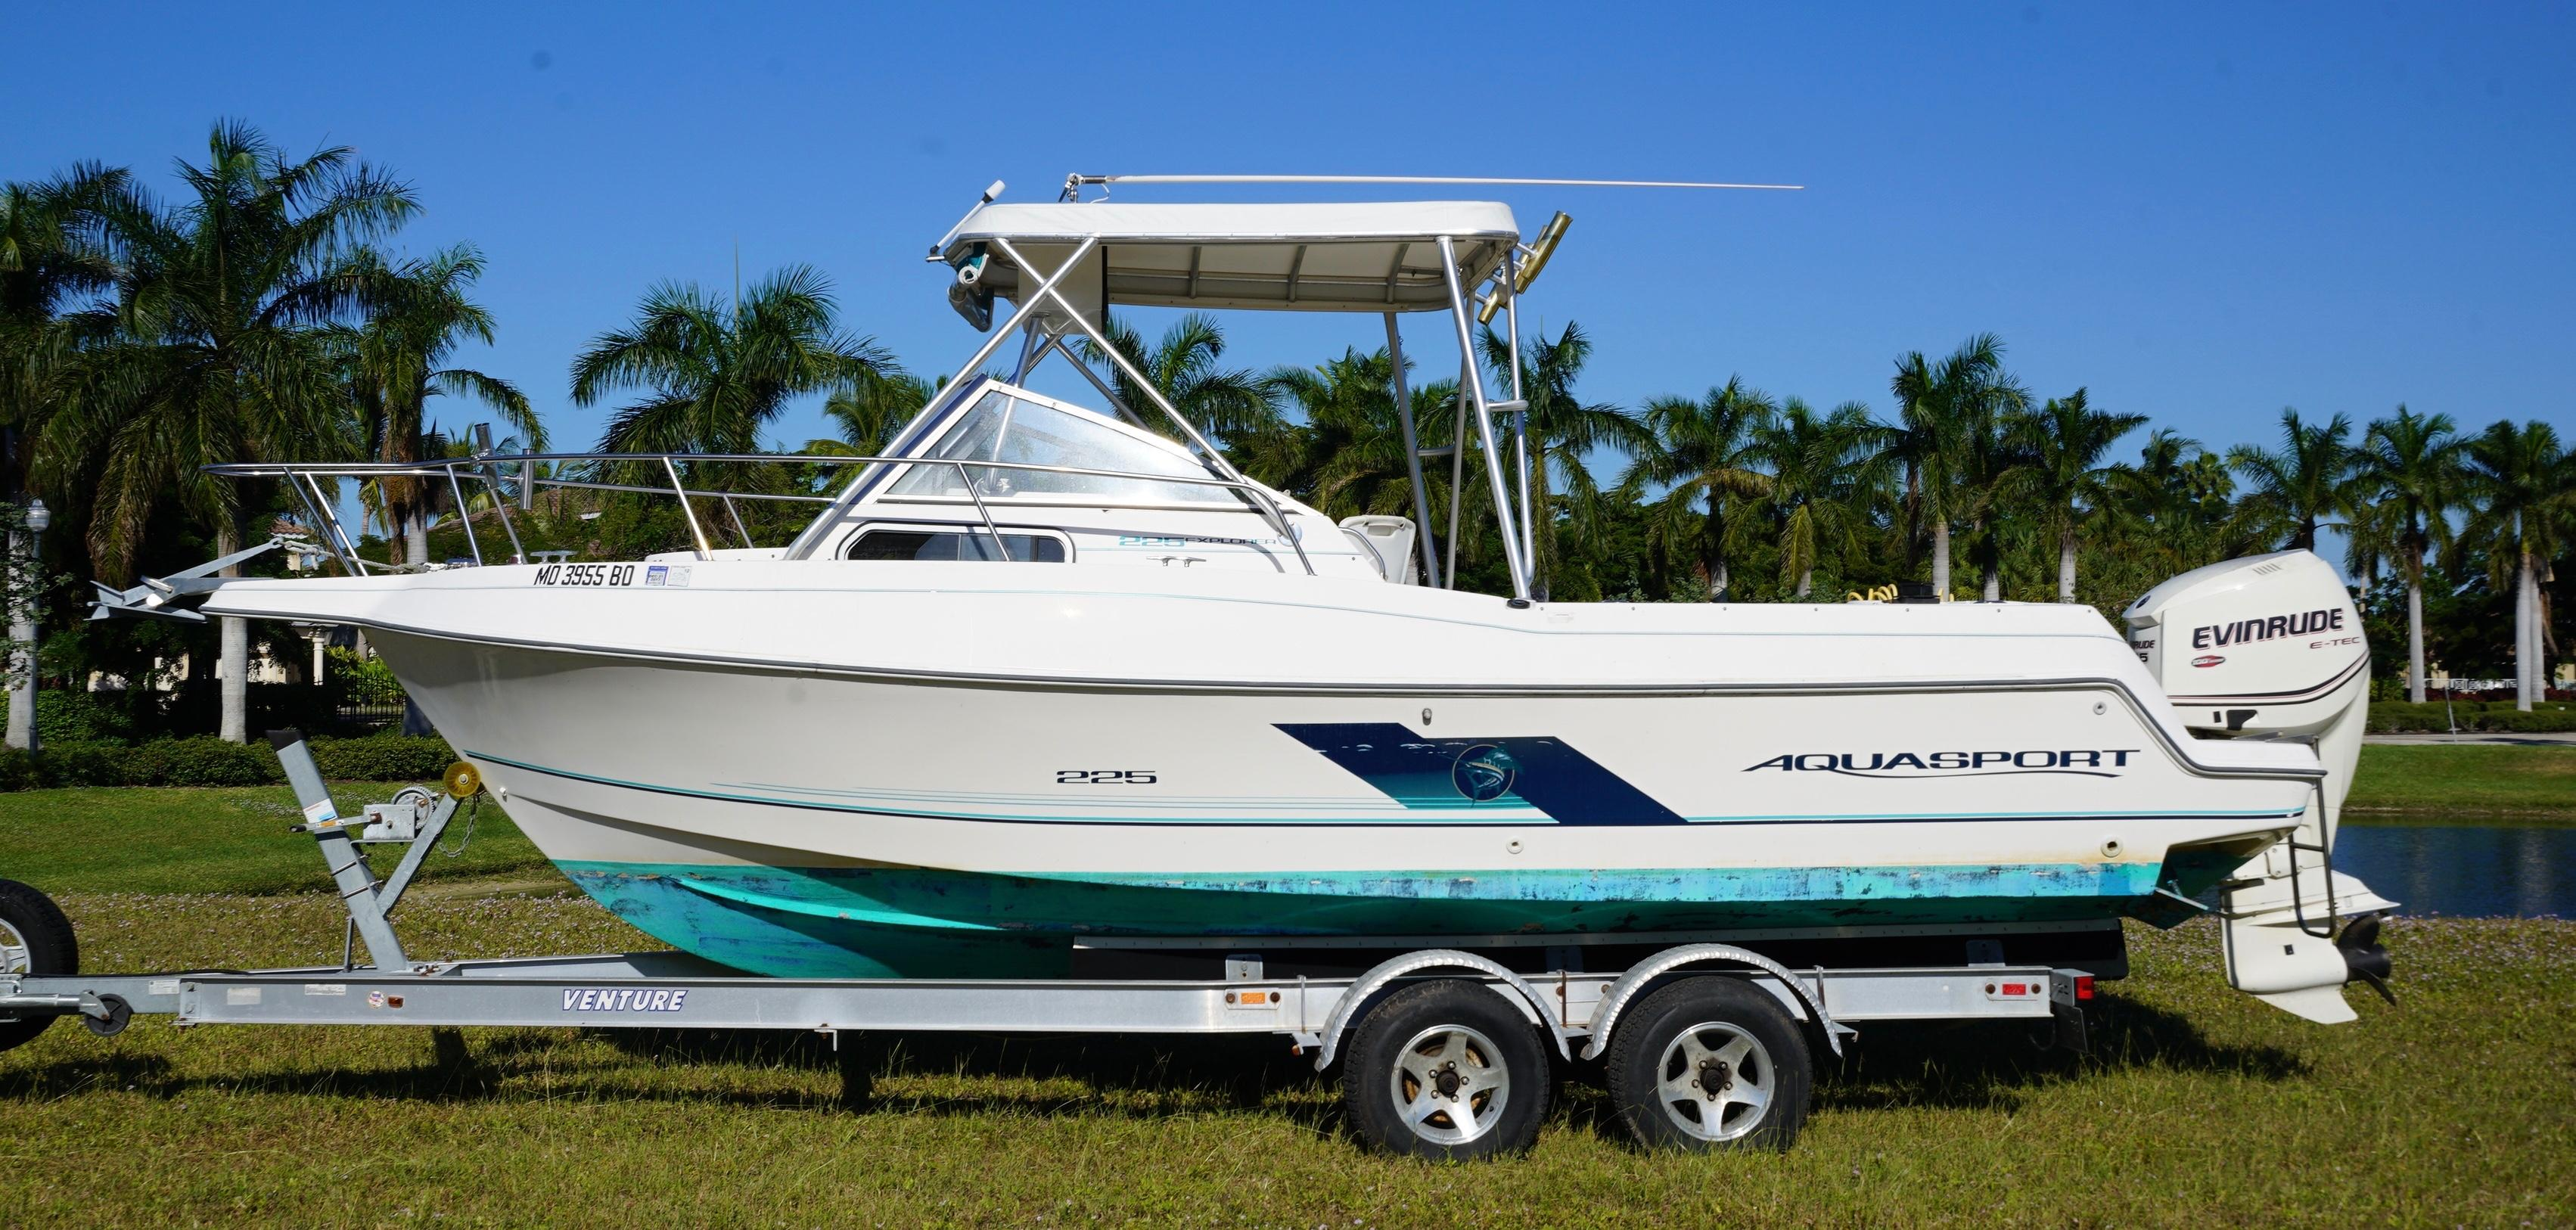 6539098_20171121122412263_1_XLARGE&w=520&h=346&t=1511295852000 search boats for sale yachtworld com  at bakdesigns.co